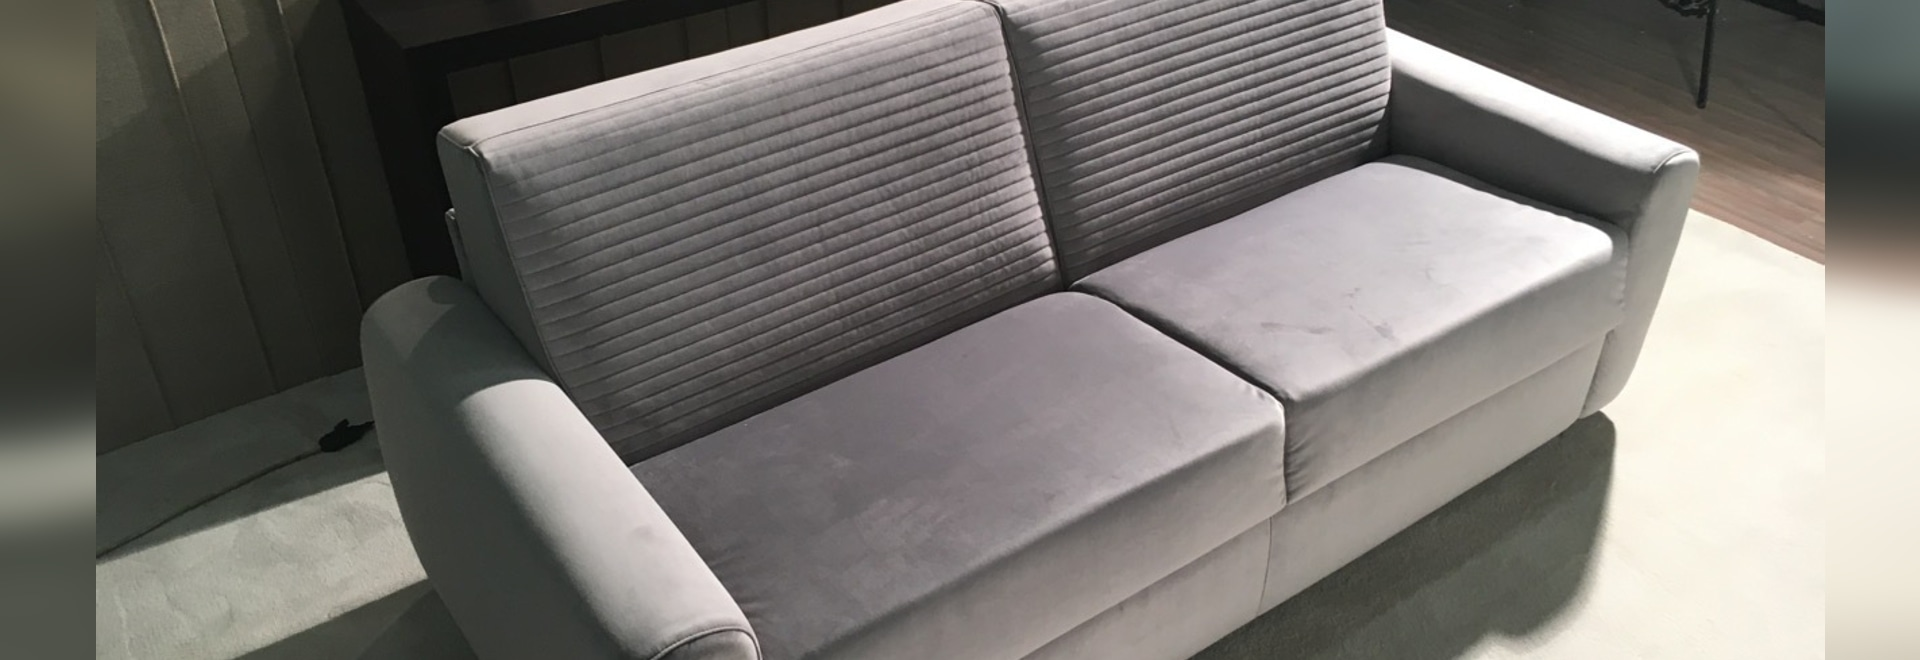 Philip sofa bed characterized by high seats and rounded armrests